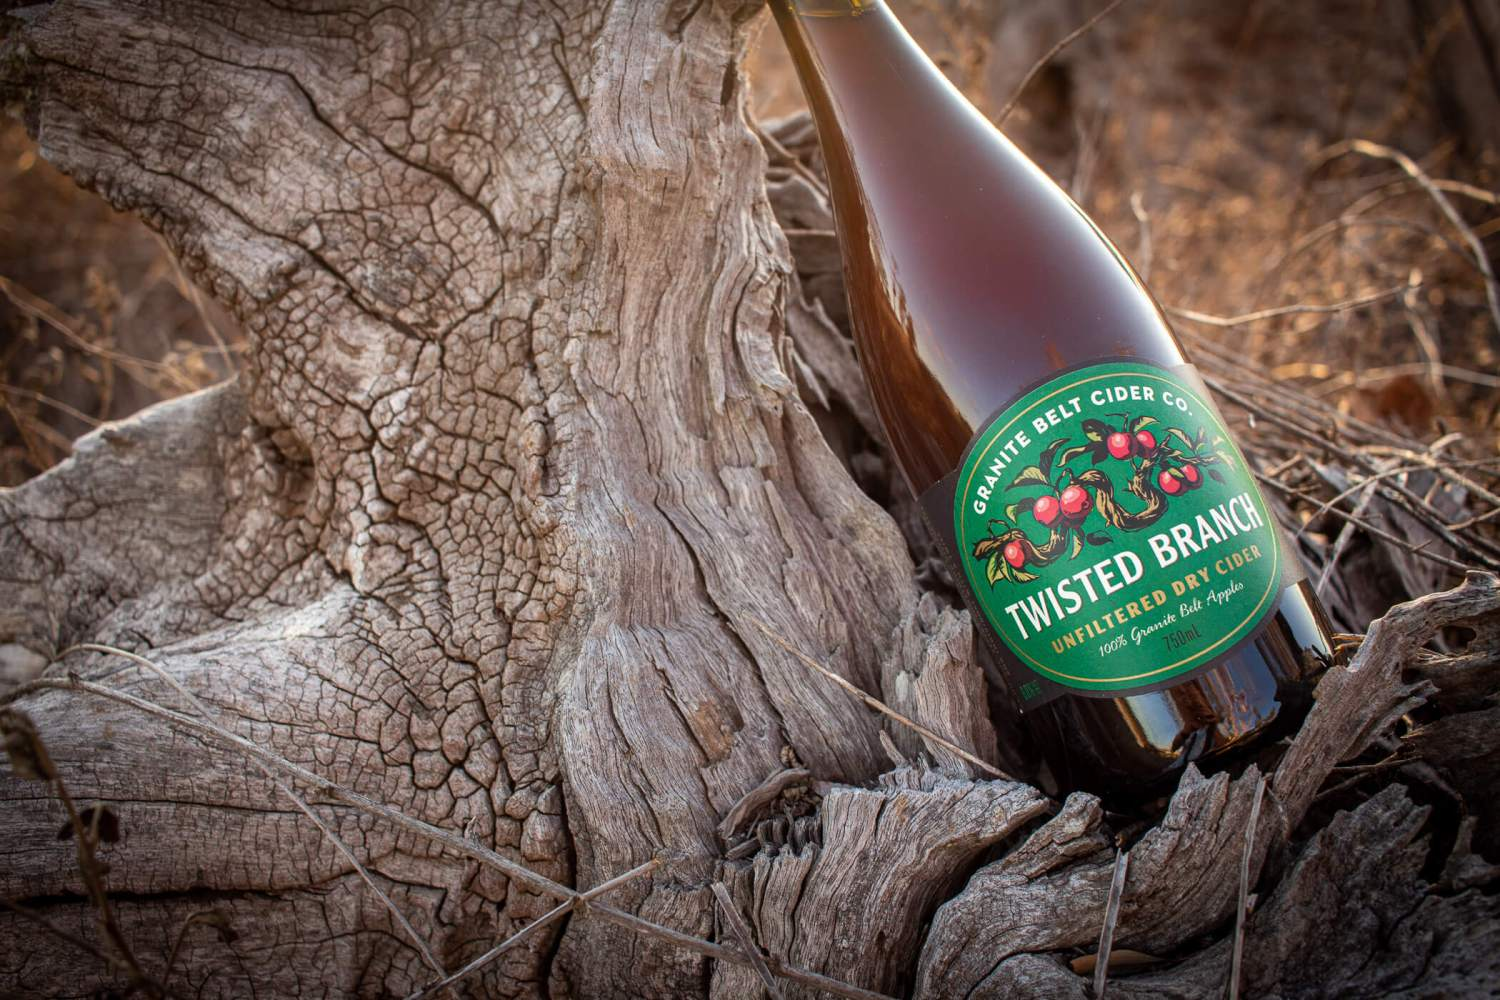 Granite Belt Cider Co Twisted Branch Bottle on a log